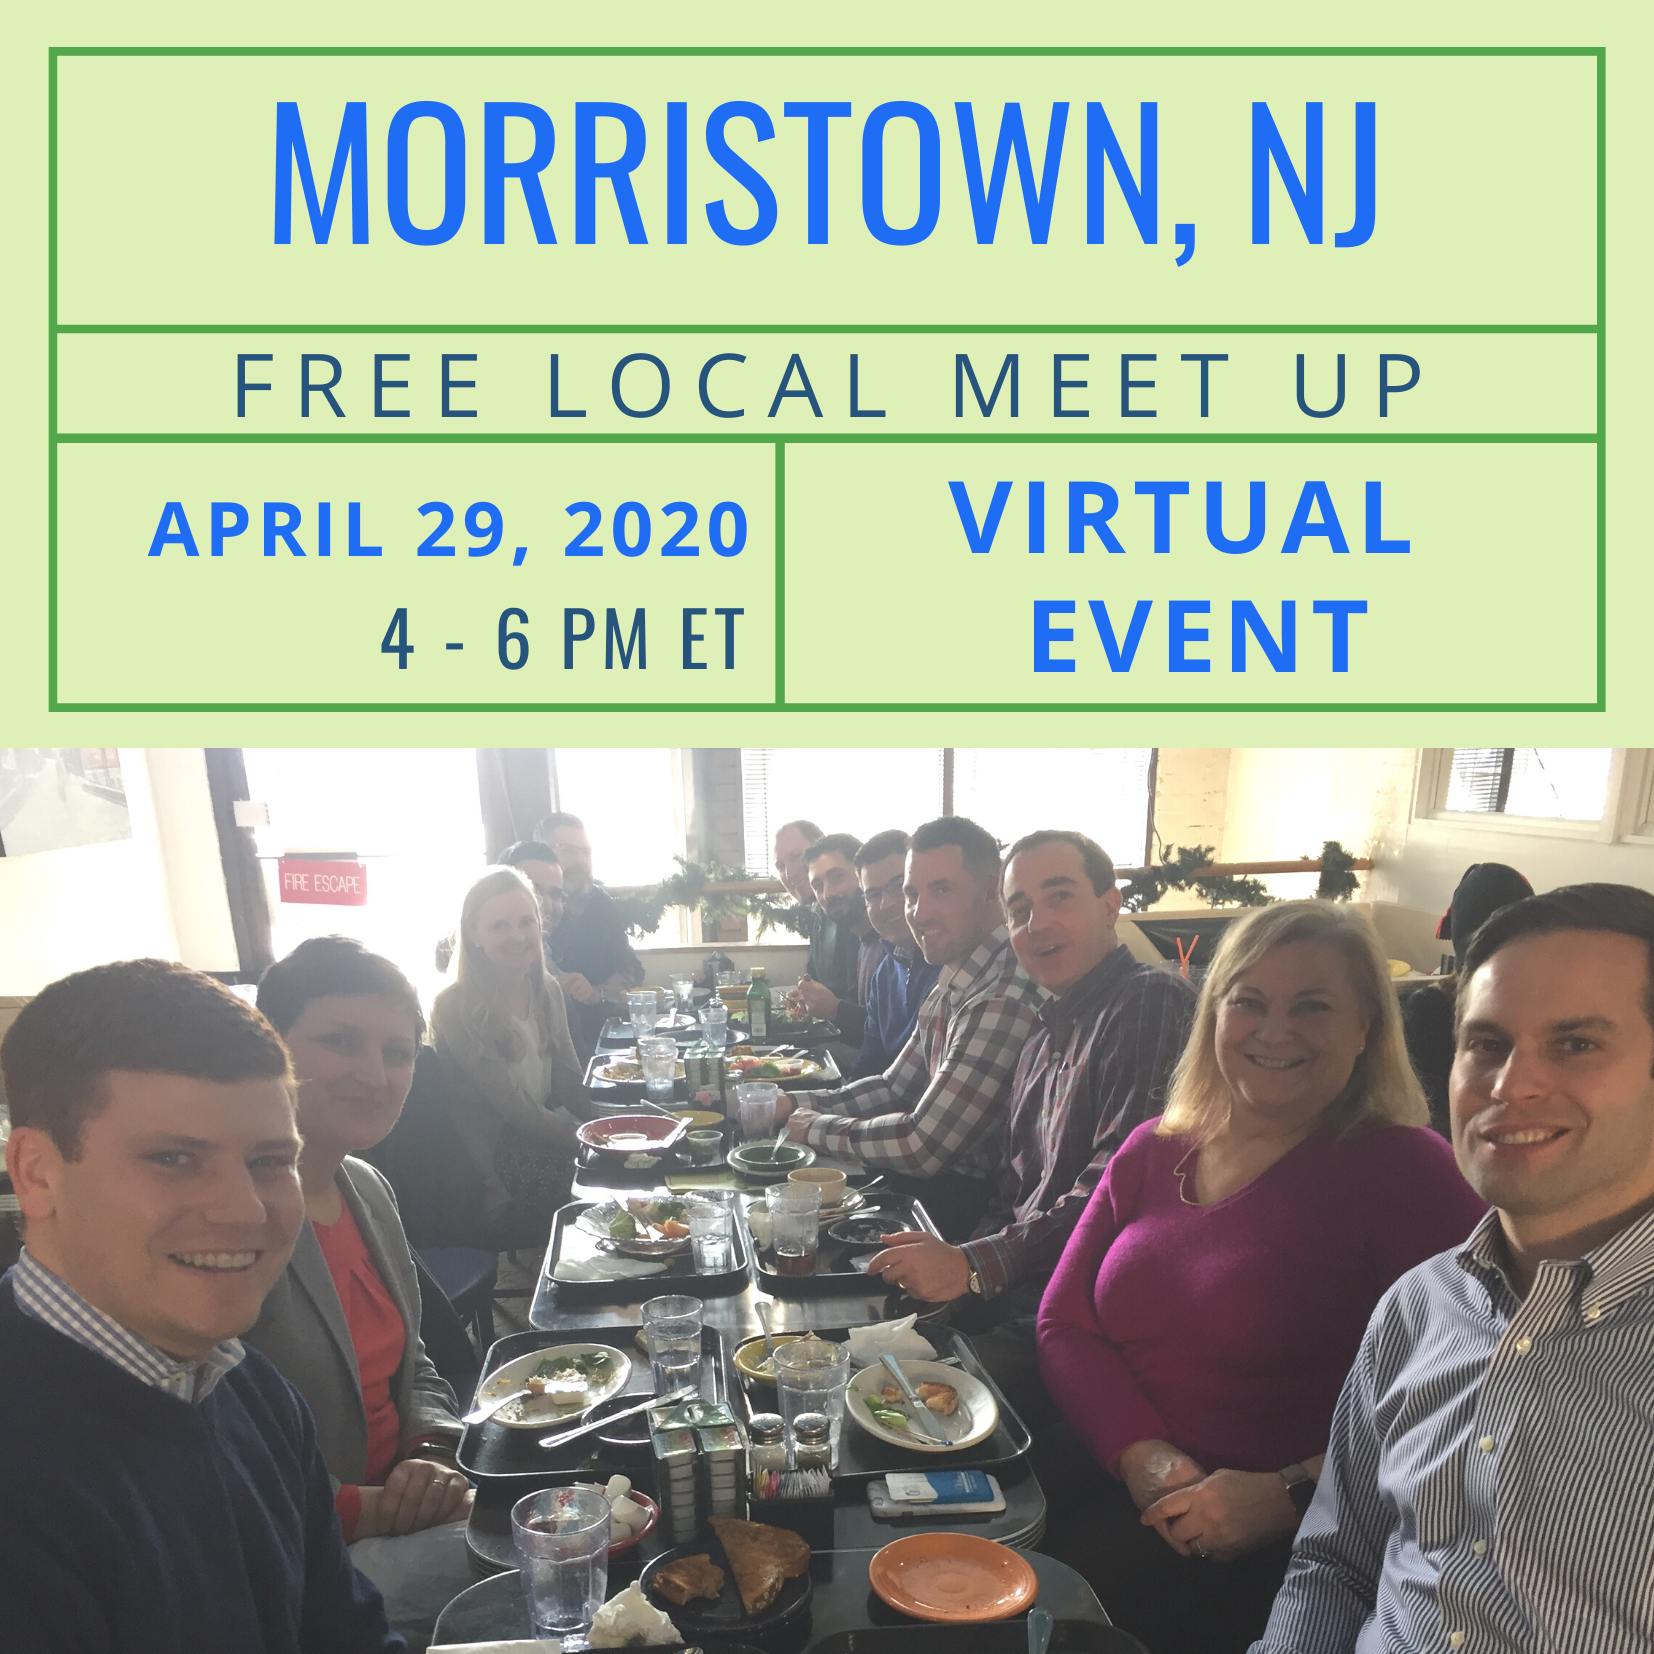 Free Local Meet Up for Morristown, NJ on Wednesday, April 29